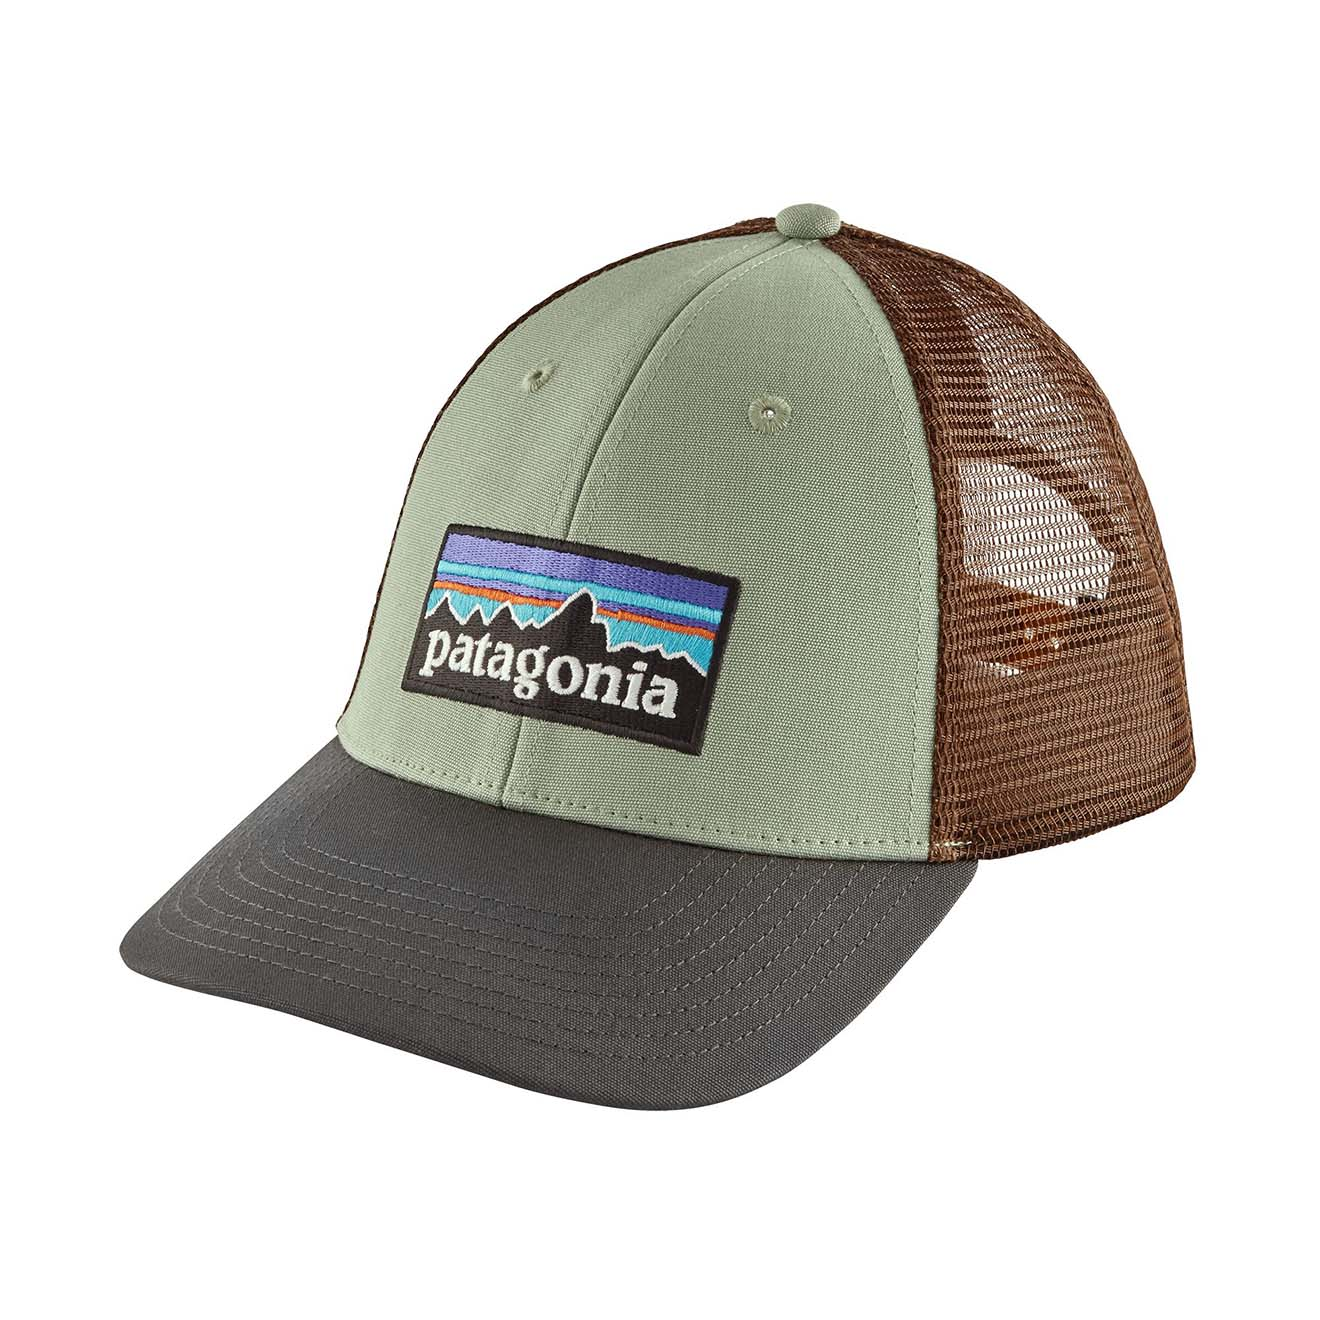 1cba4cac Patagonia P-6 Logo LoPro Trucker Hat Celadon - The Sporting Lodge